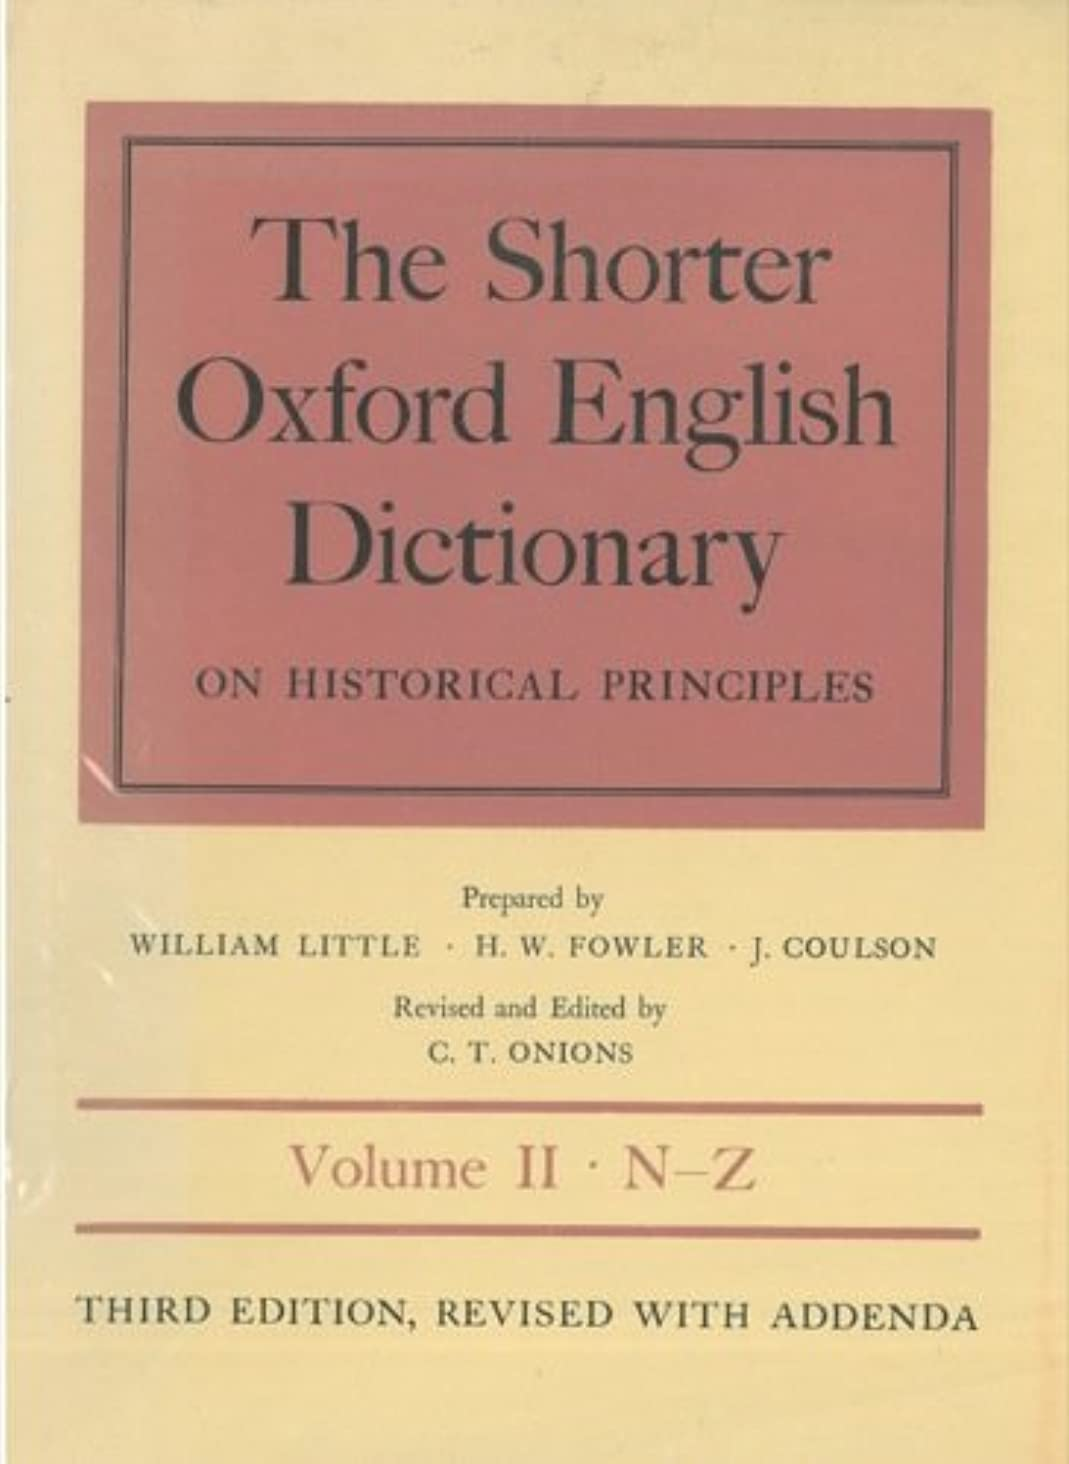 The Shorter Oxford English Dictionary on Historical Principles, Third Edition, Revised with Addenda